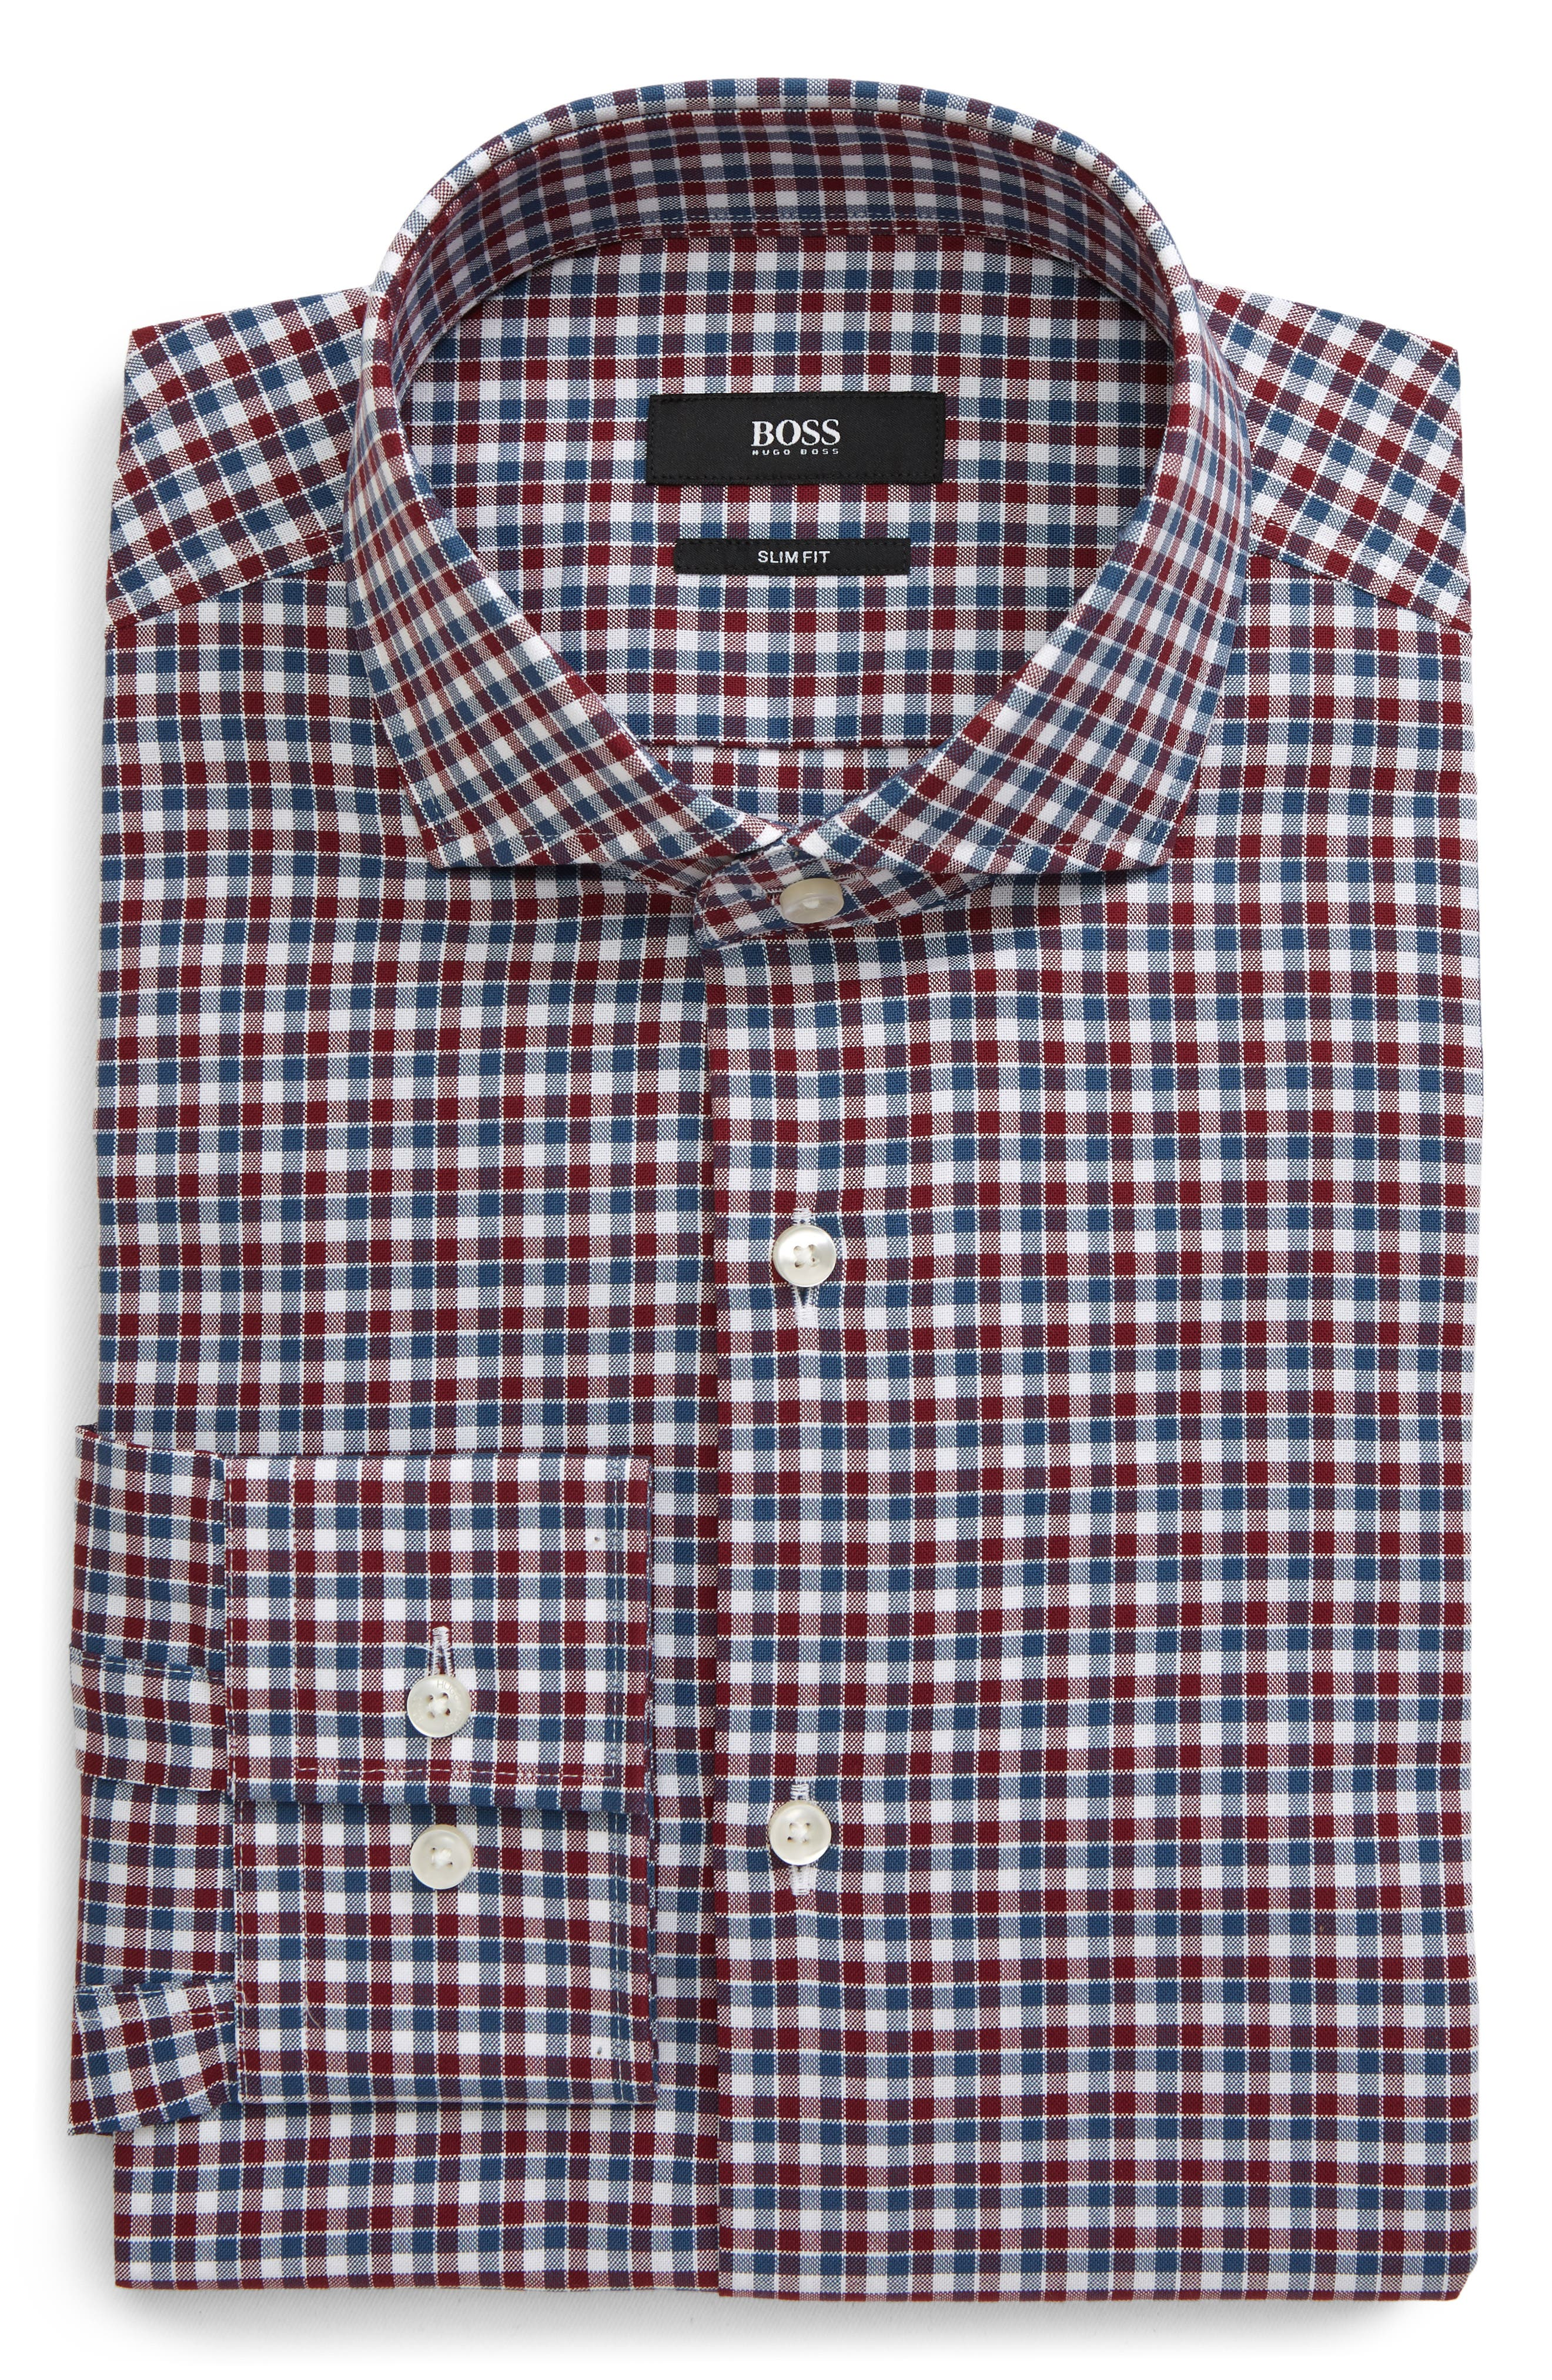 Image of BOSS Plaid Slim Fit Dress Shirt